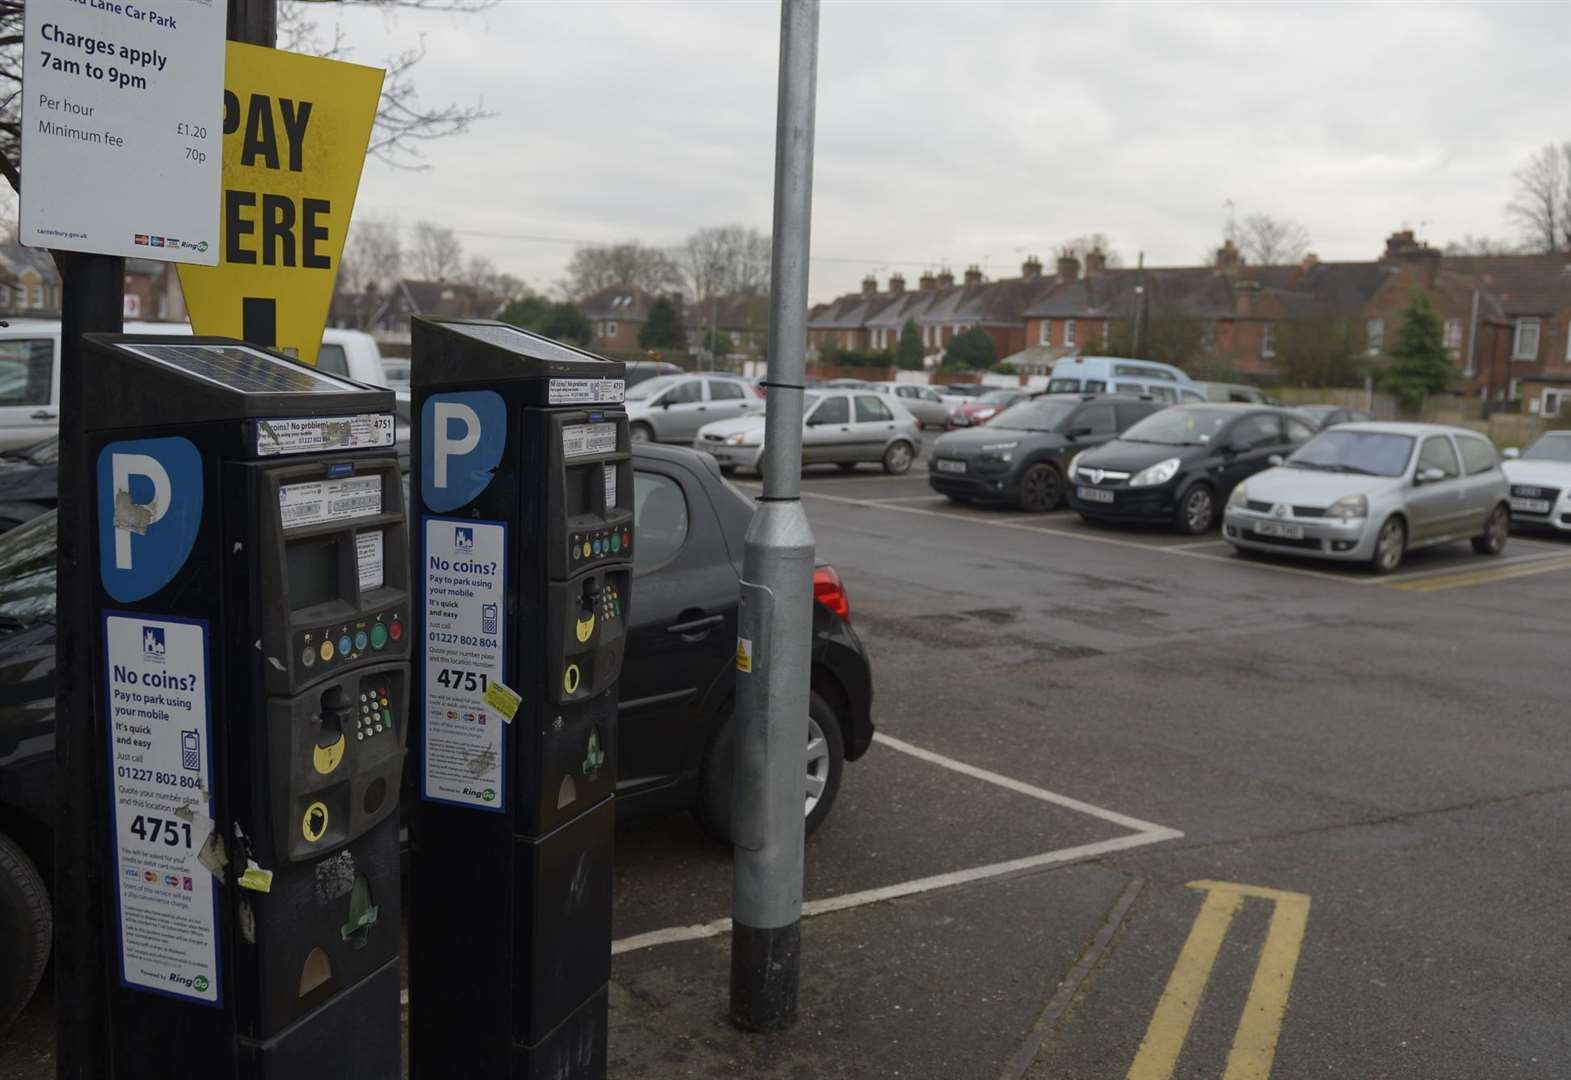 Council's ticketless parking scheme 'the biggest in country'